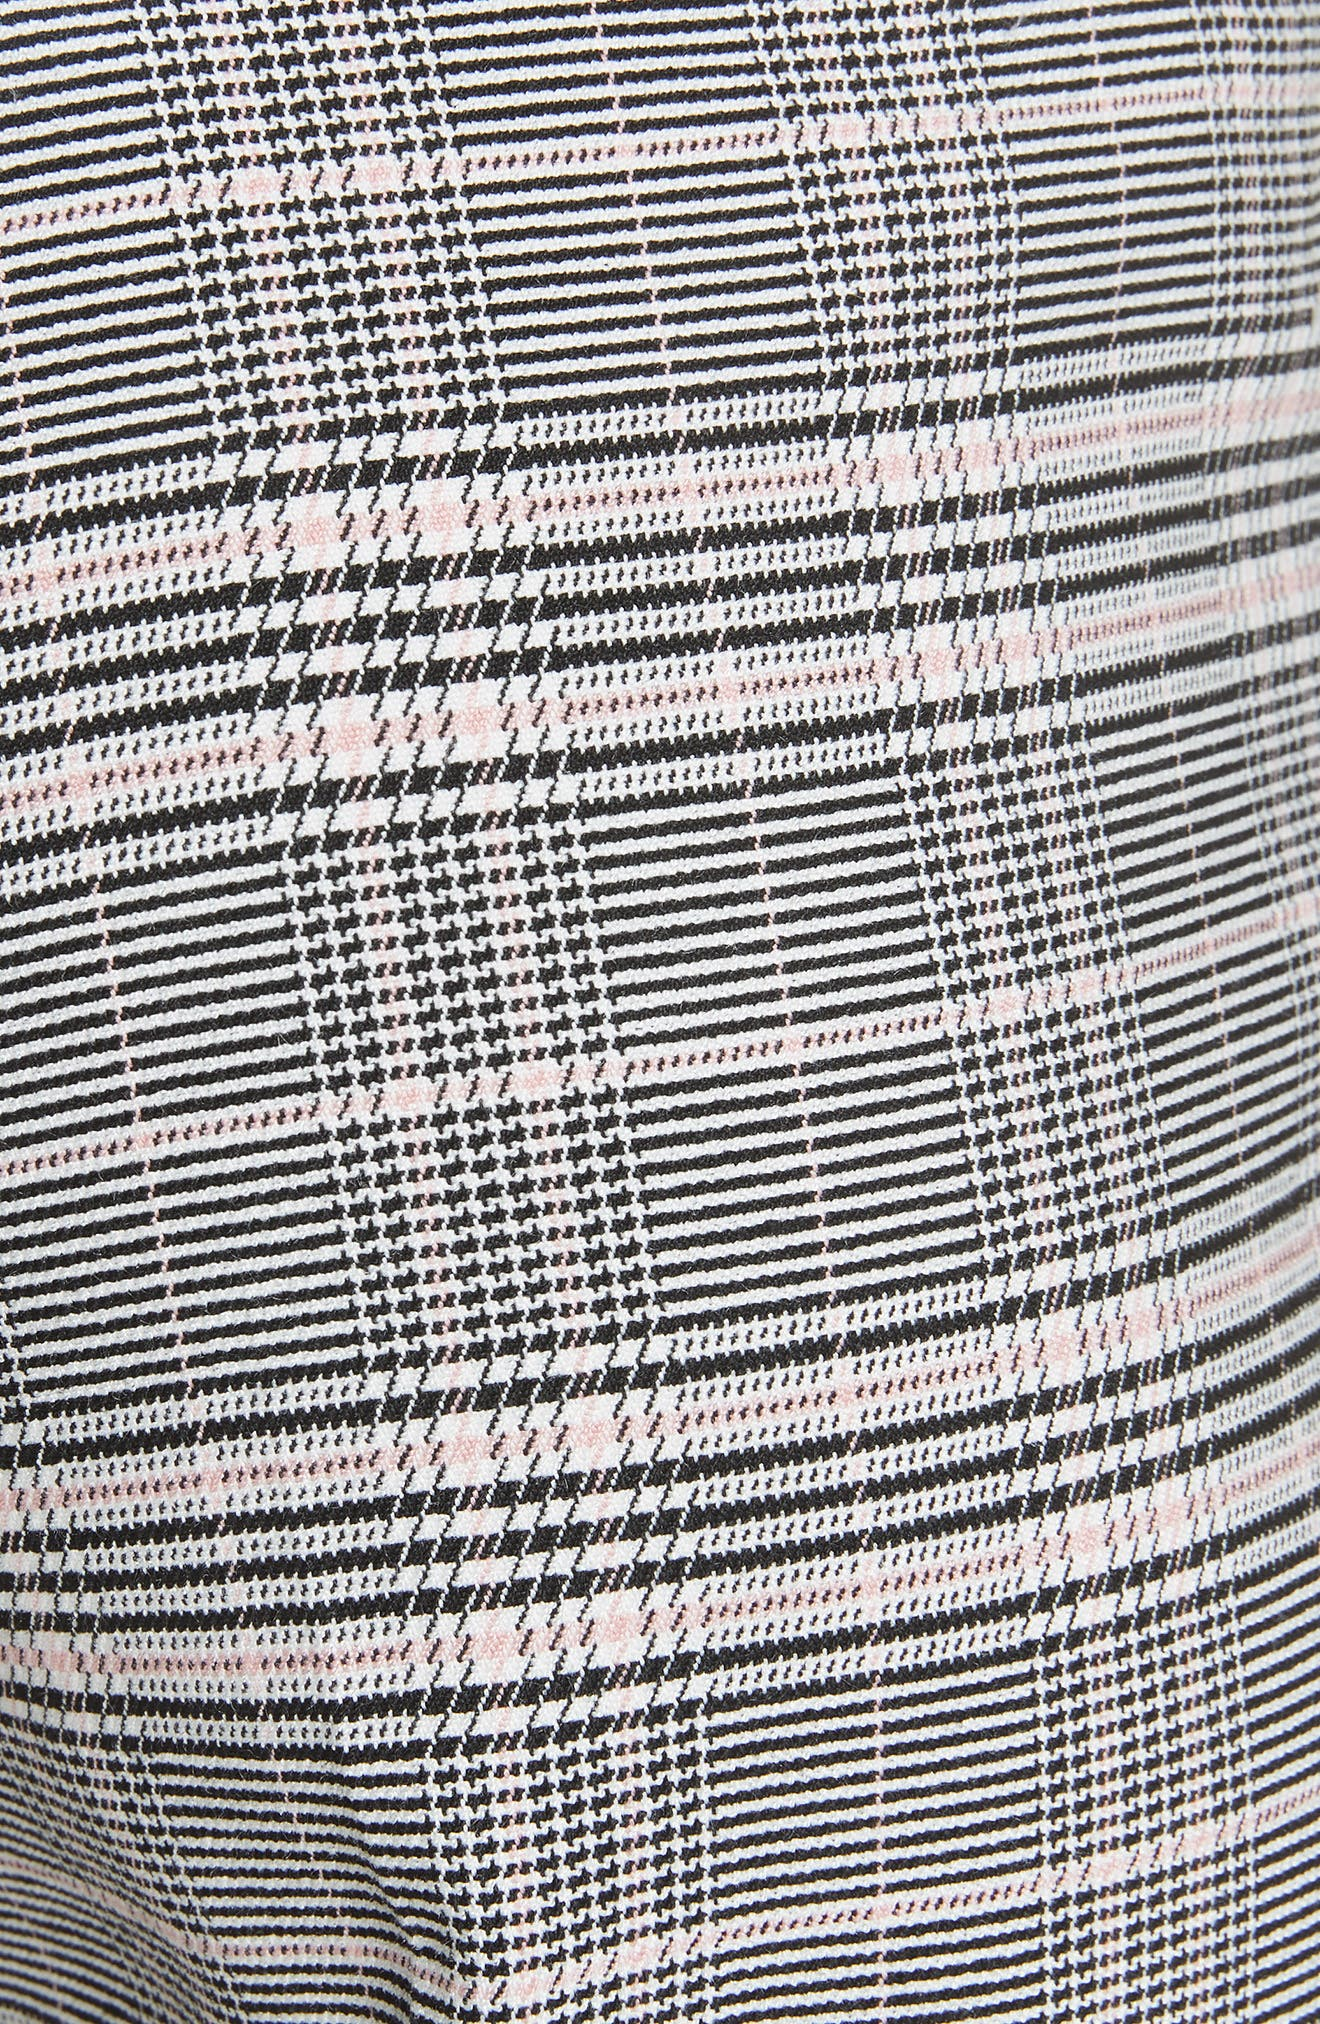 Ted Working Title Kimmt Check Plaid Trousers,                             Alternate thumbnail 5, color,                             GREY